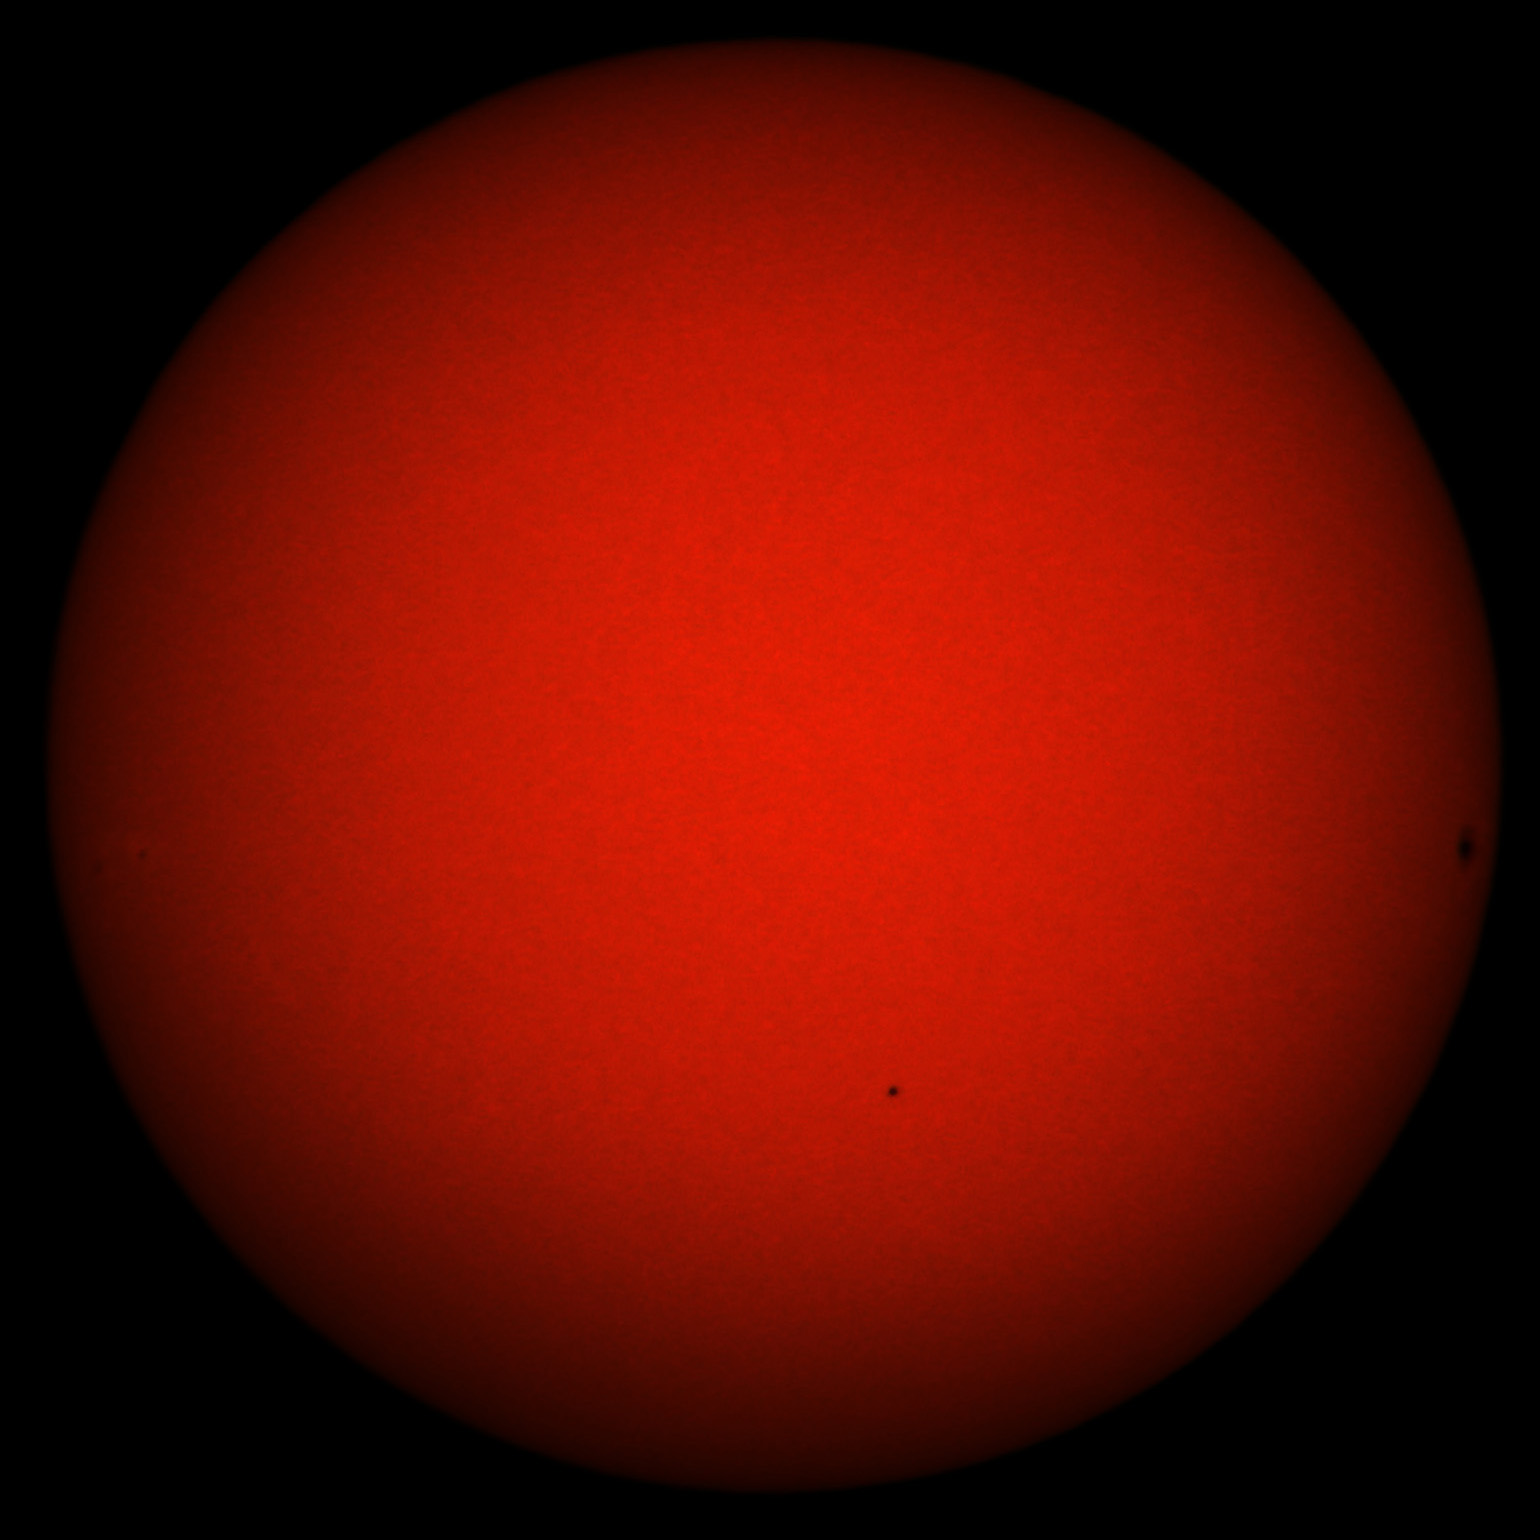 Transit of Mercury, November 8, 2006